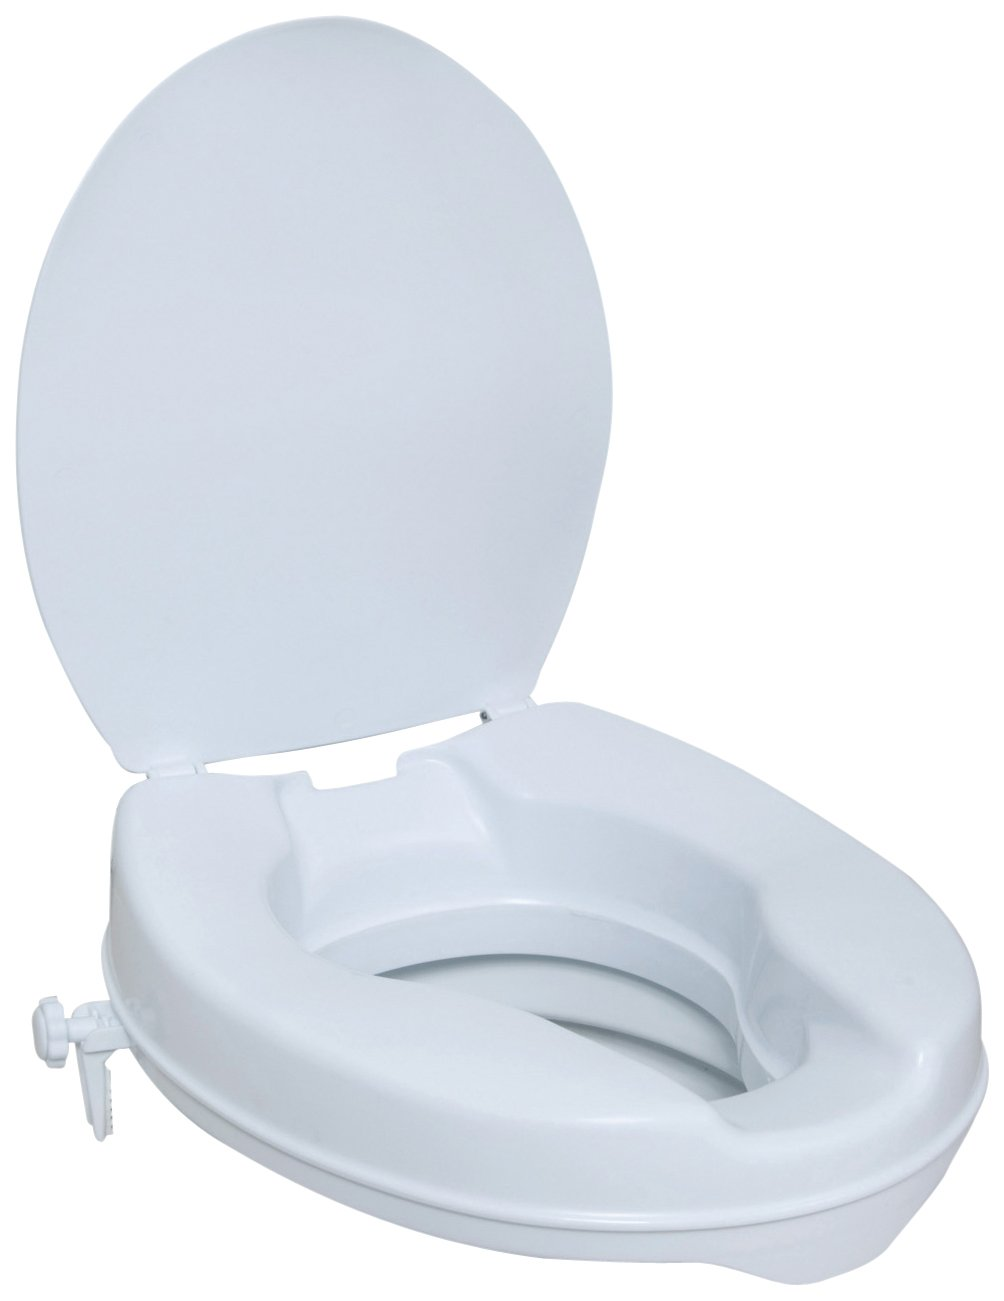 Lot 10 - NRS Healthcare M11132 Stanton Raised Toilet Seat